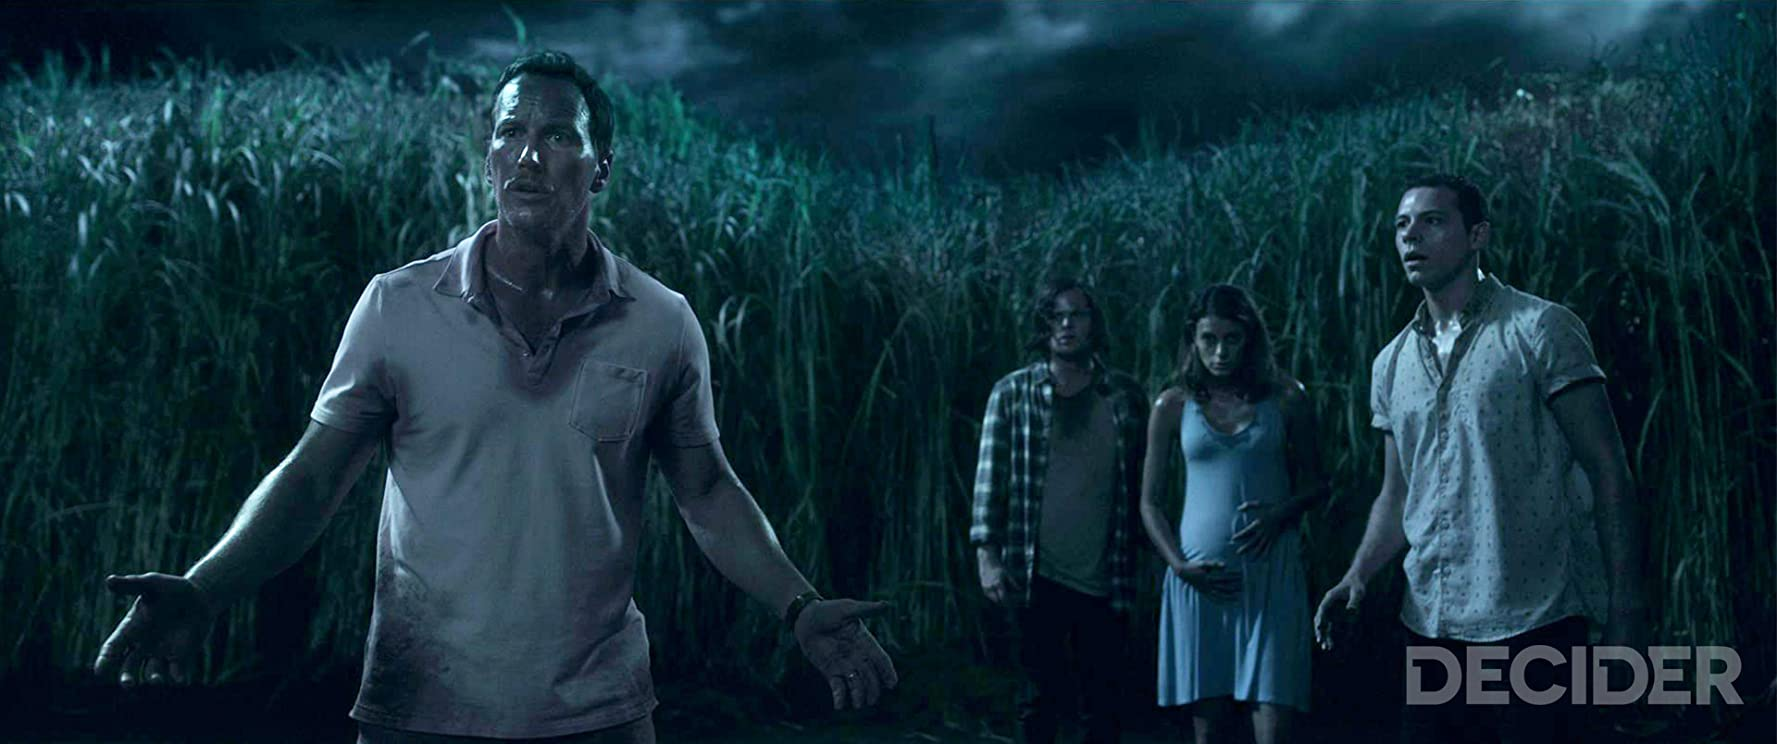 Patrick Wilson, Avery Whitted, Harrison Gilbertson, and Laysla De Oliveira in In the Tall Grass (2019)